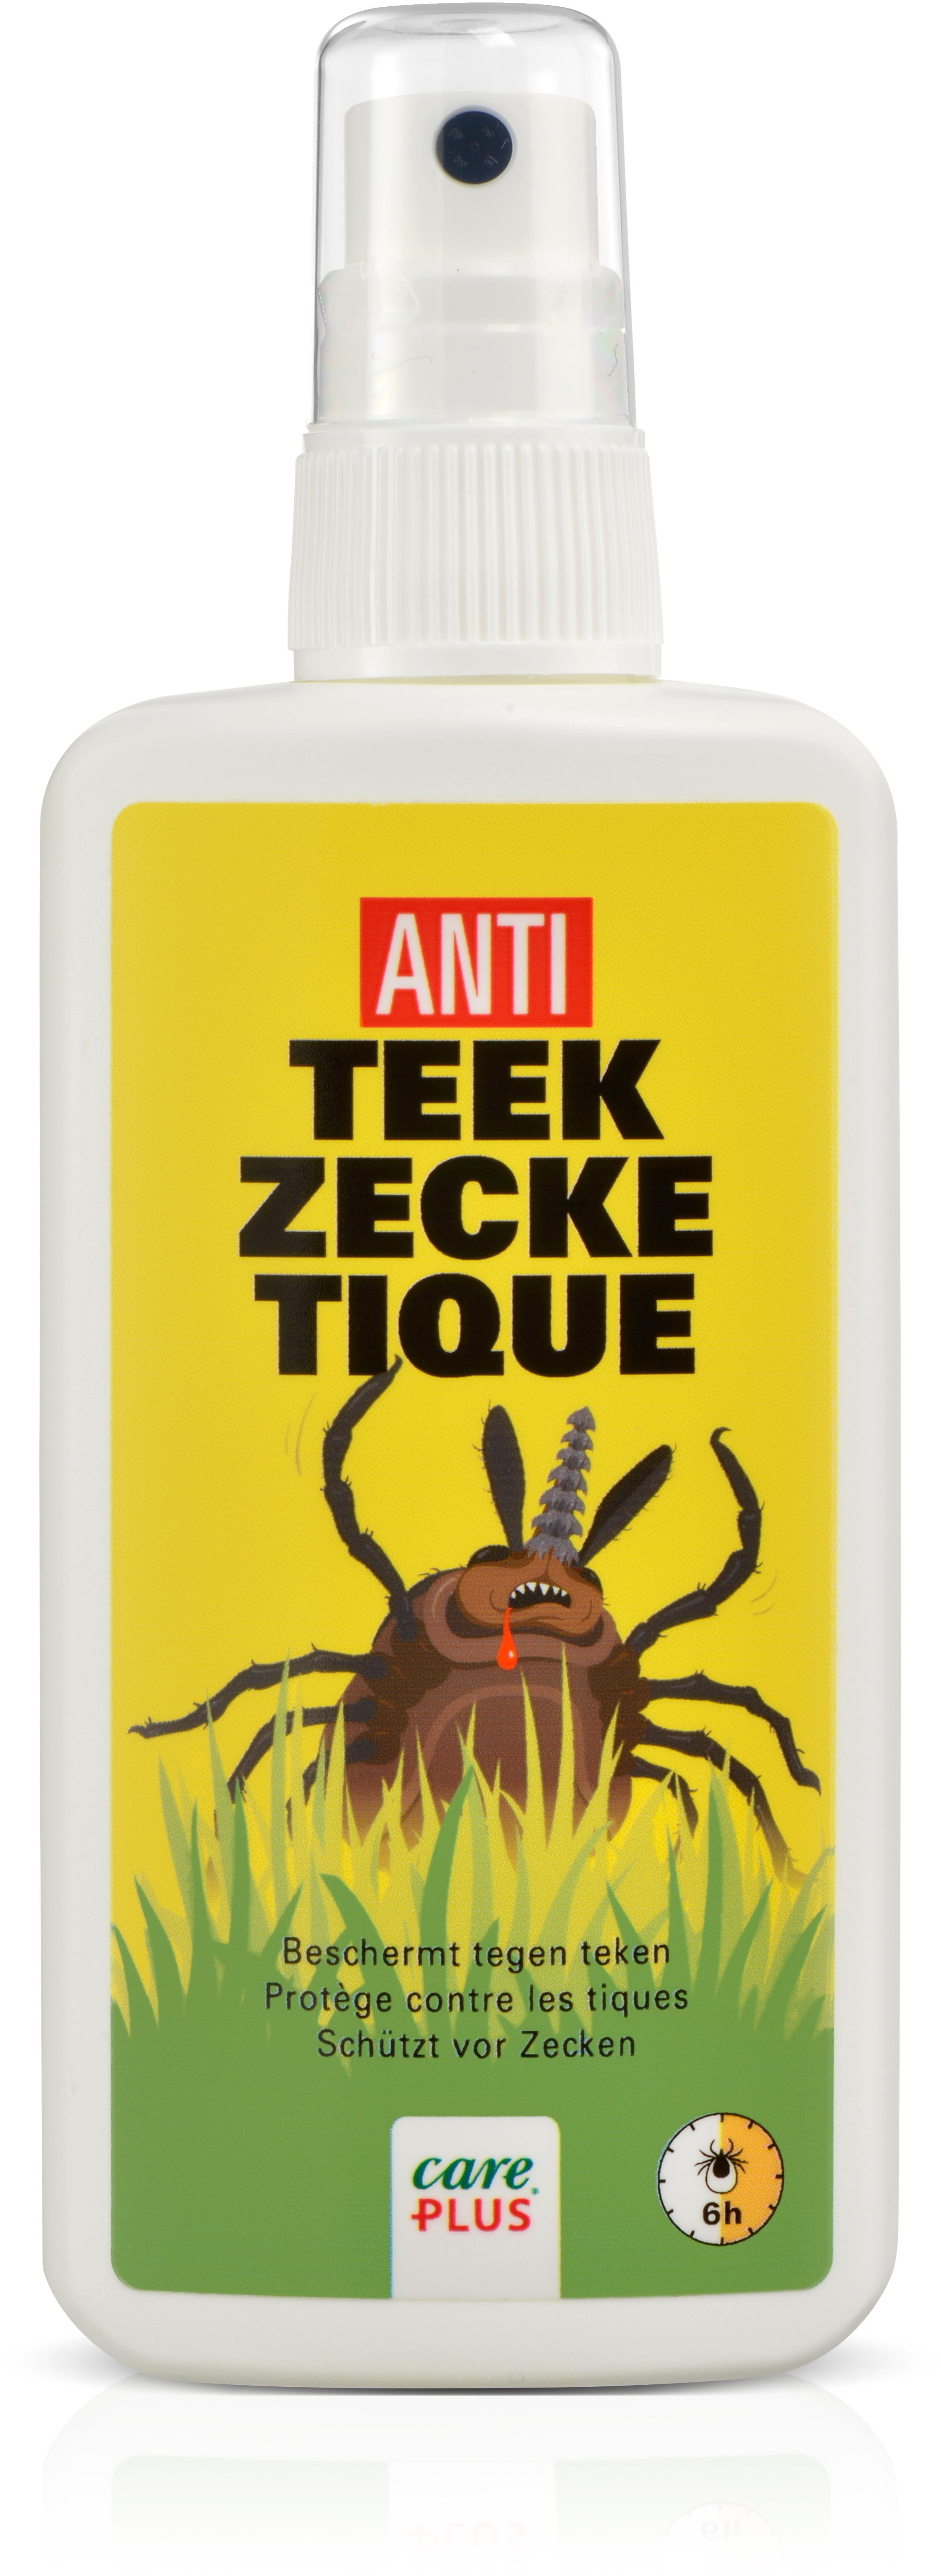 Anti-Teek/Anti-Tique spray, 100 ml